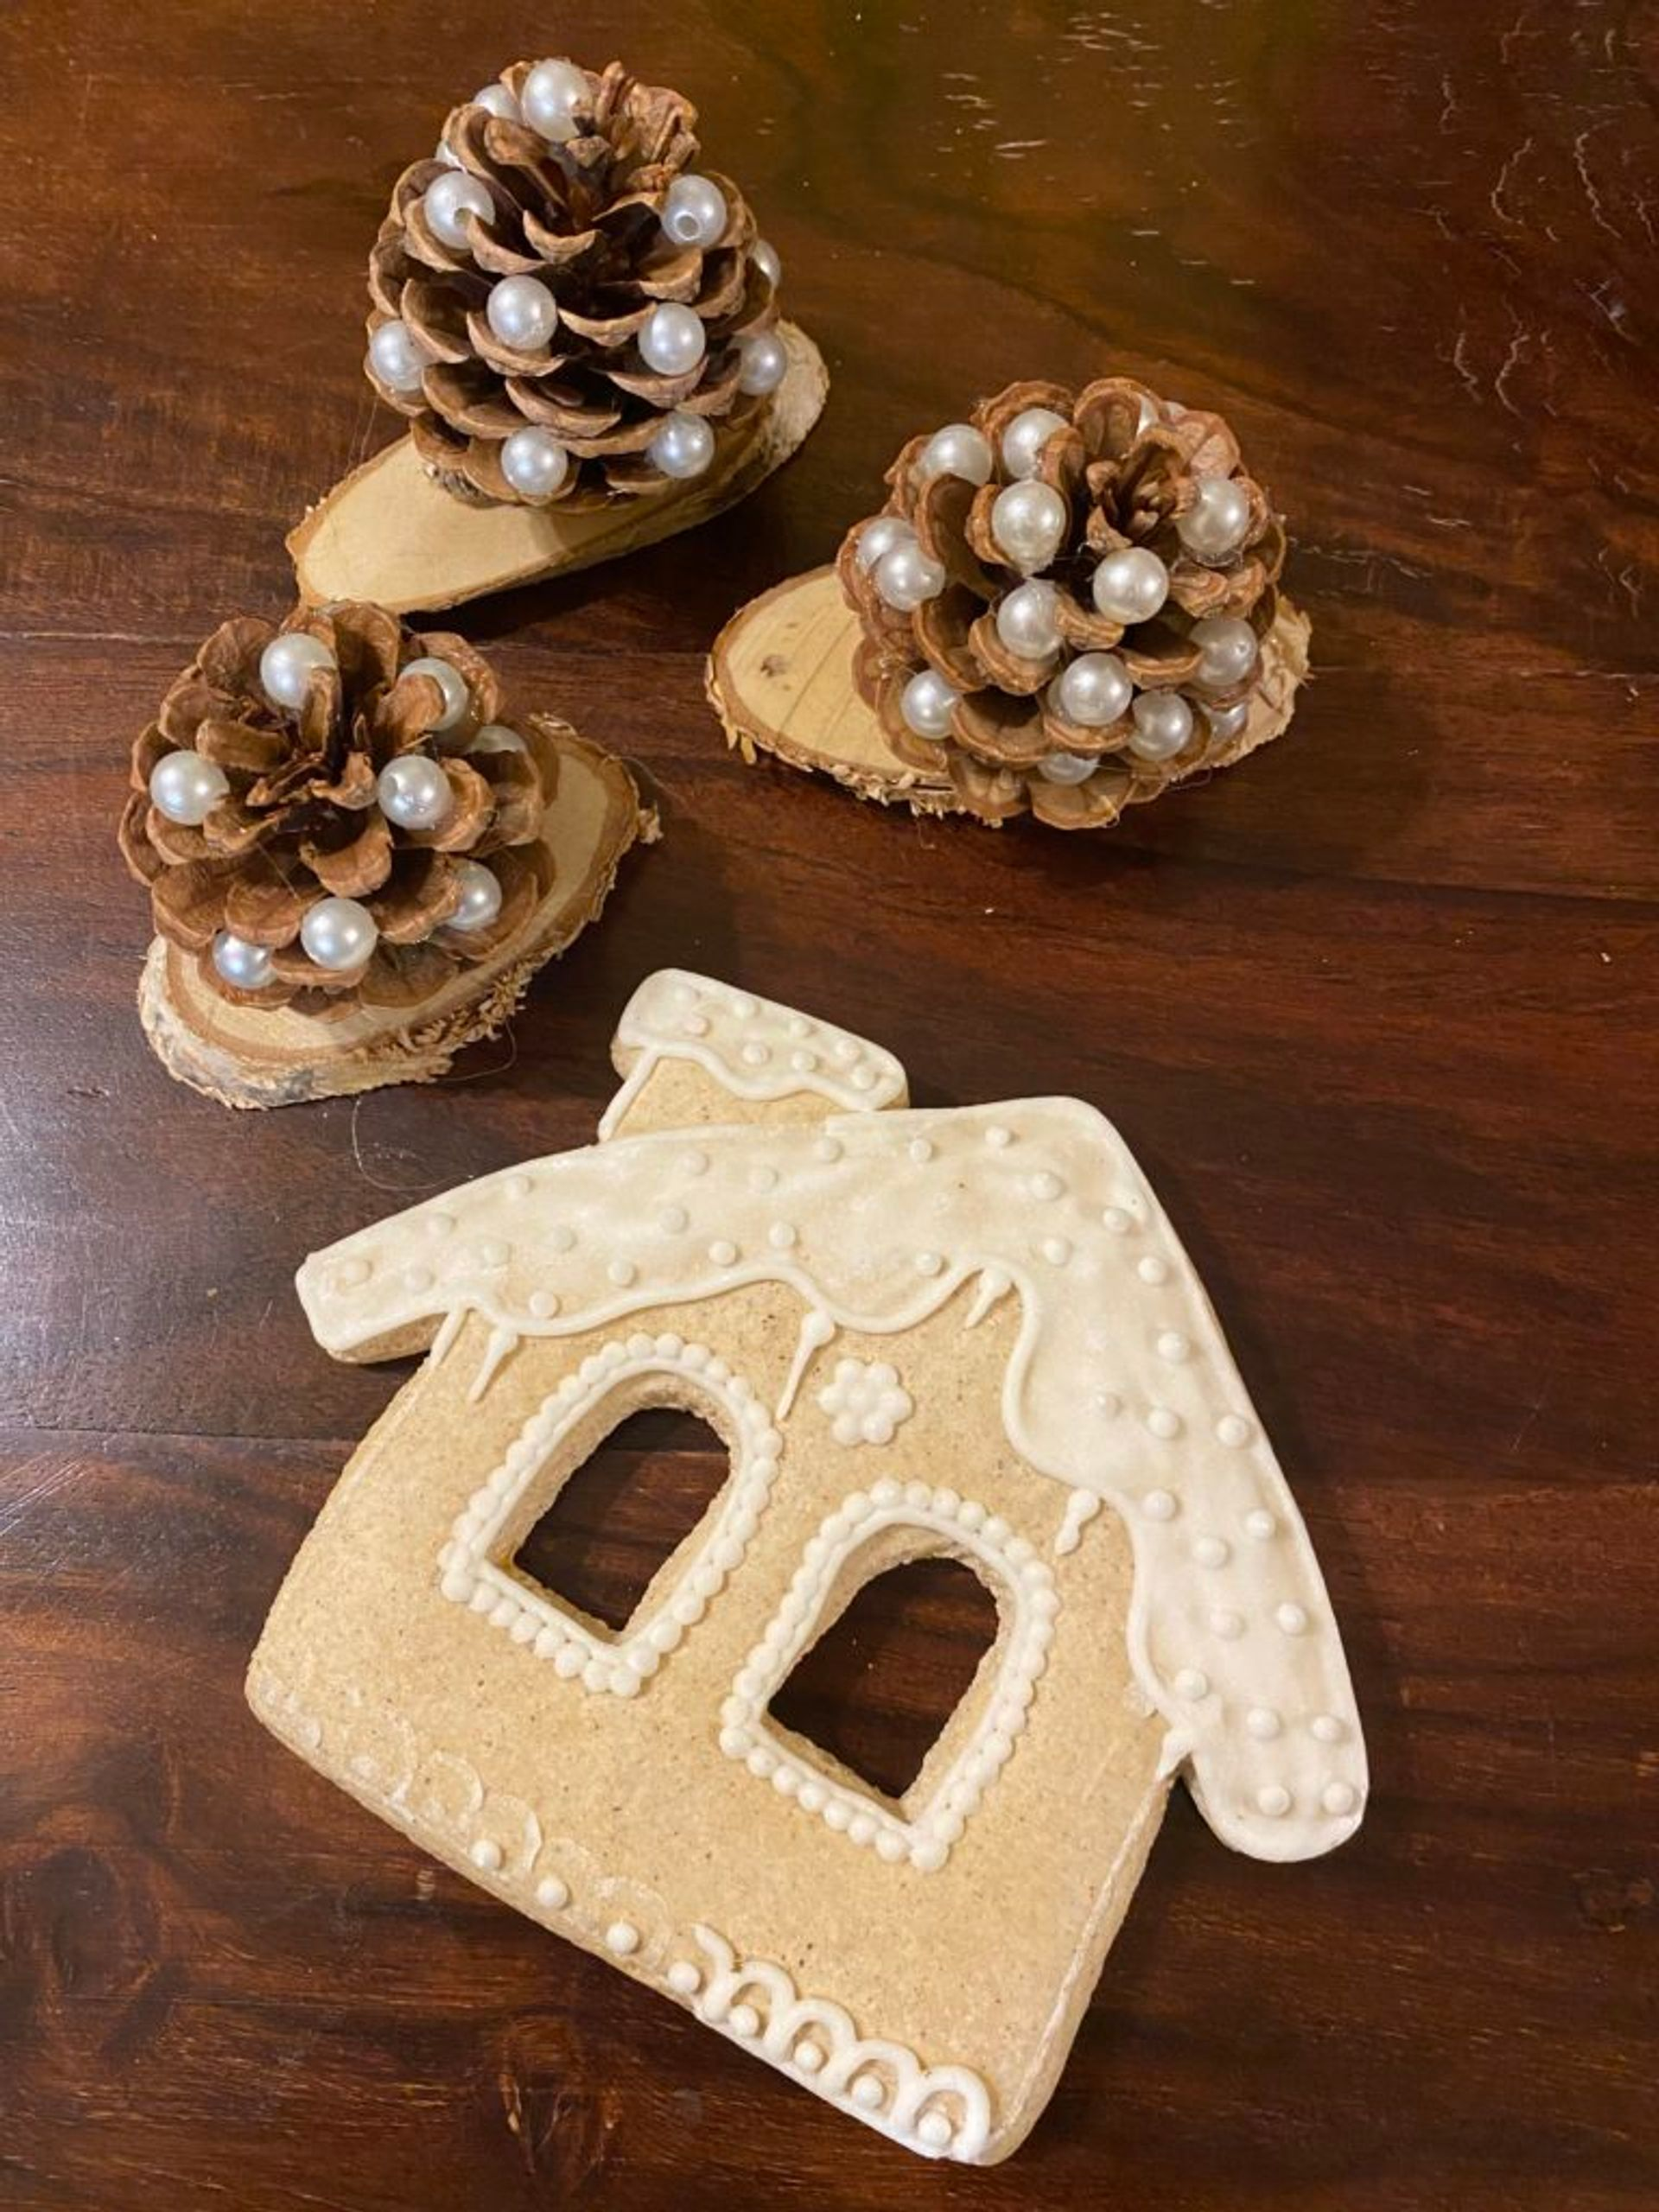 A gingerbread cookie in the shape of a house decorated with white icing.